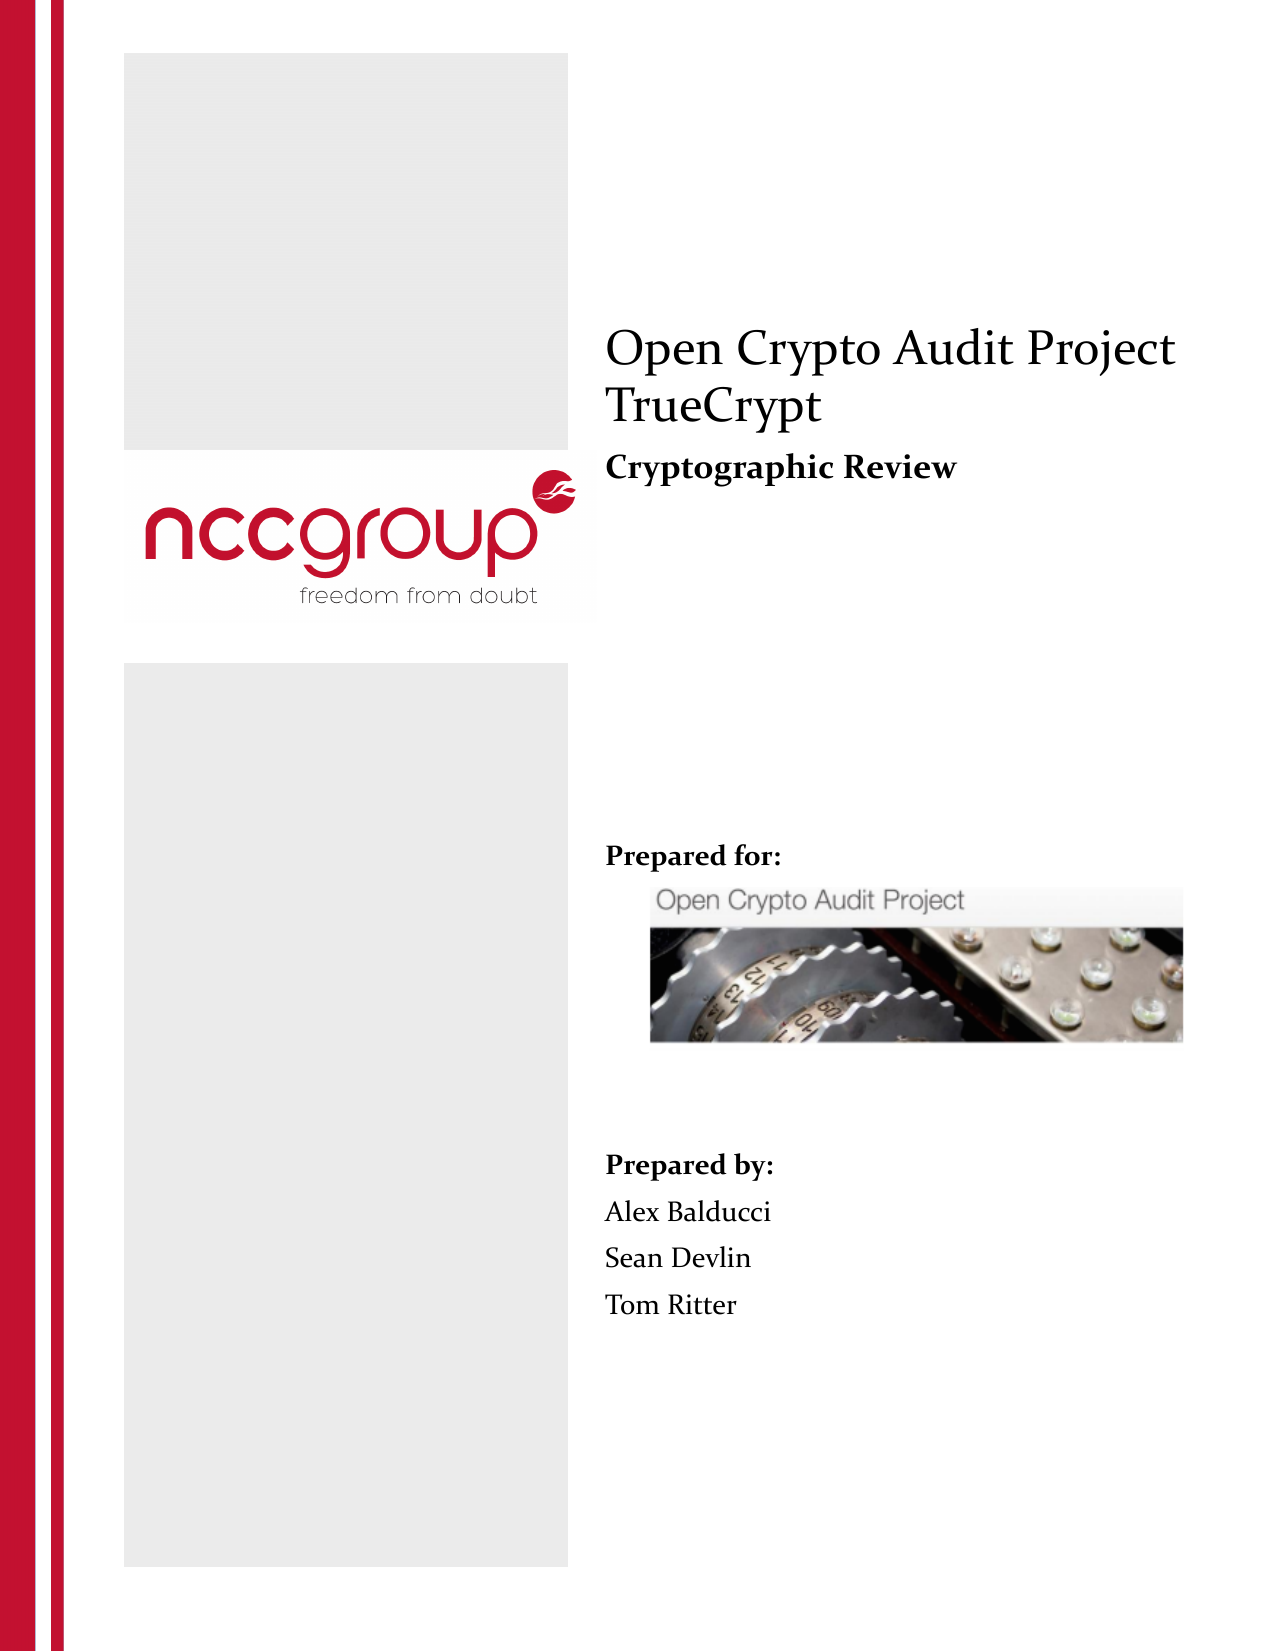 First page of the 'TrueCrypt Phase II NCC OCAP final' PDF